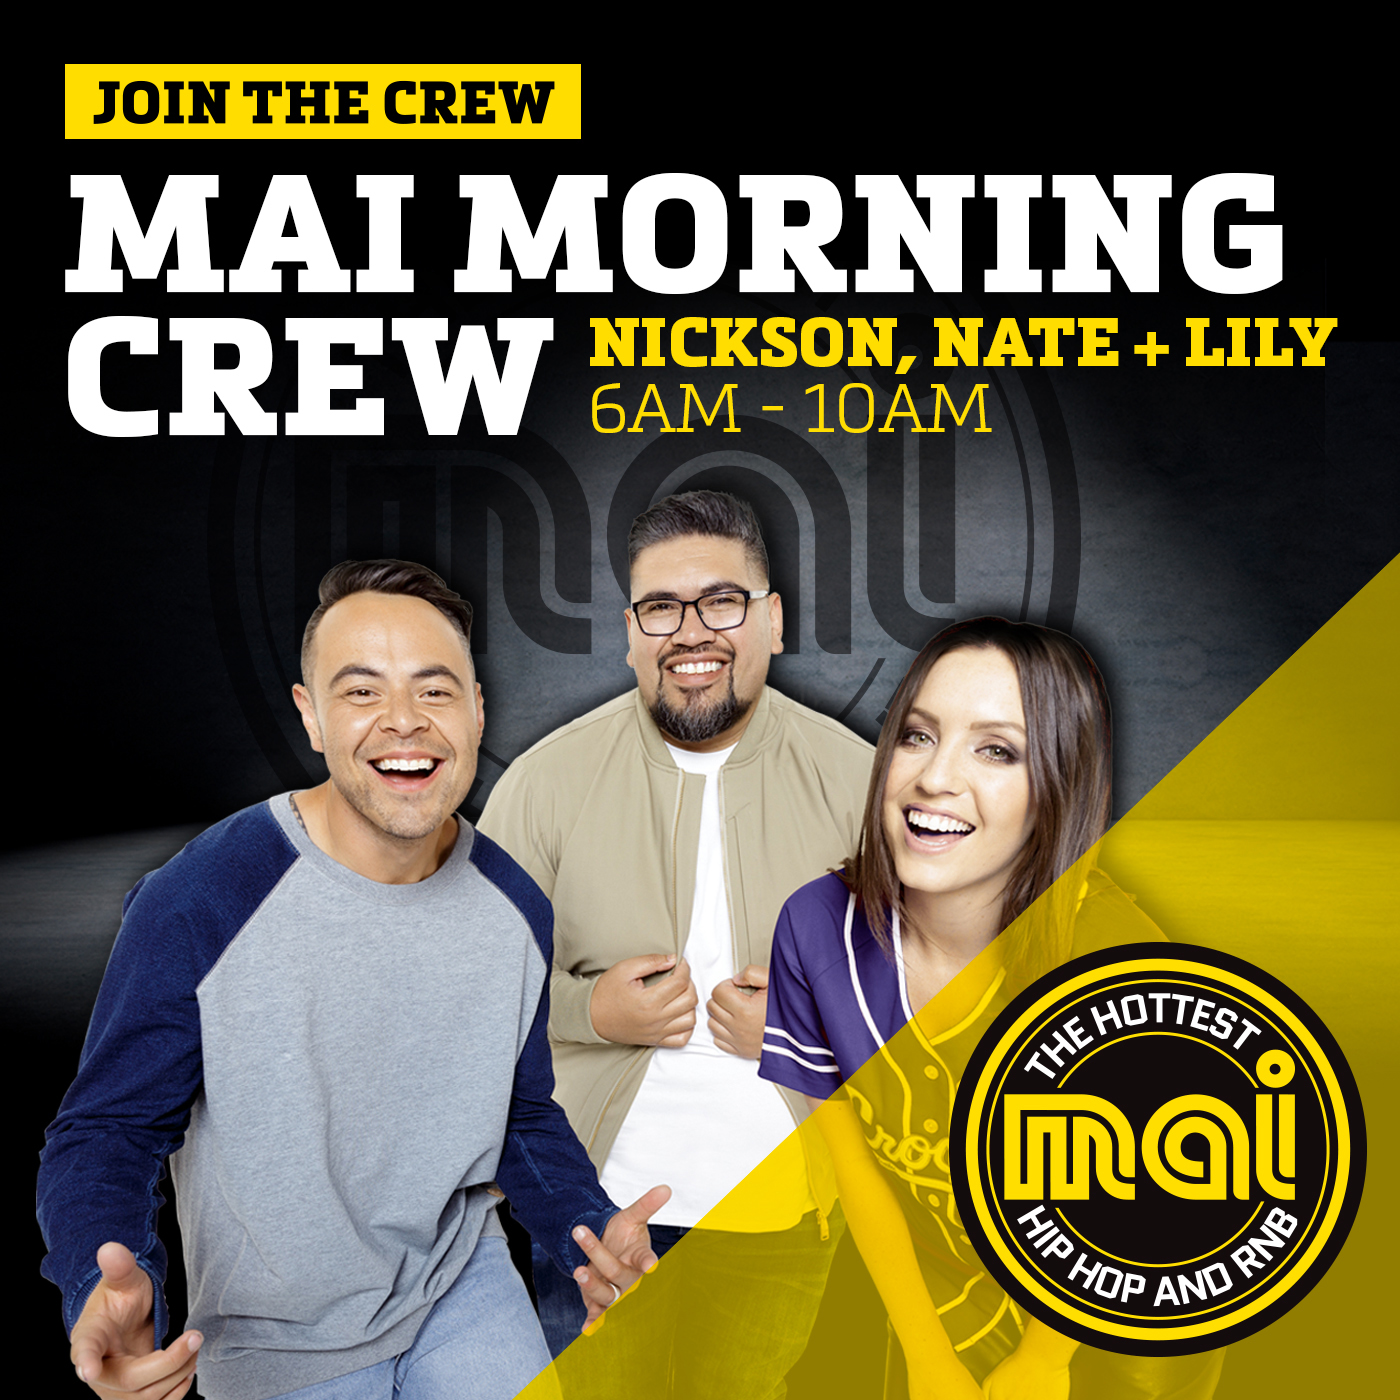 <![CDATA[Mai Mornings Podcast - Mai FM - Visit maifm.co.nz for more]]>